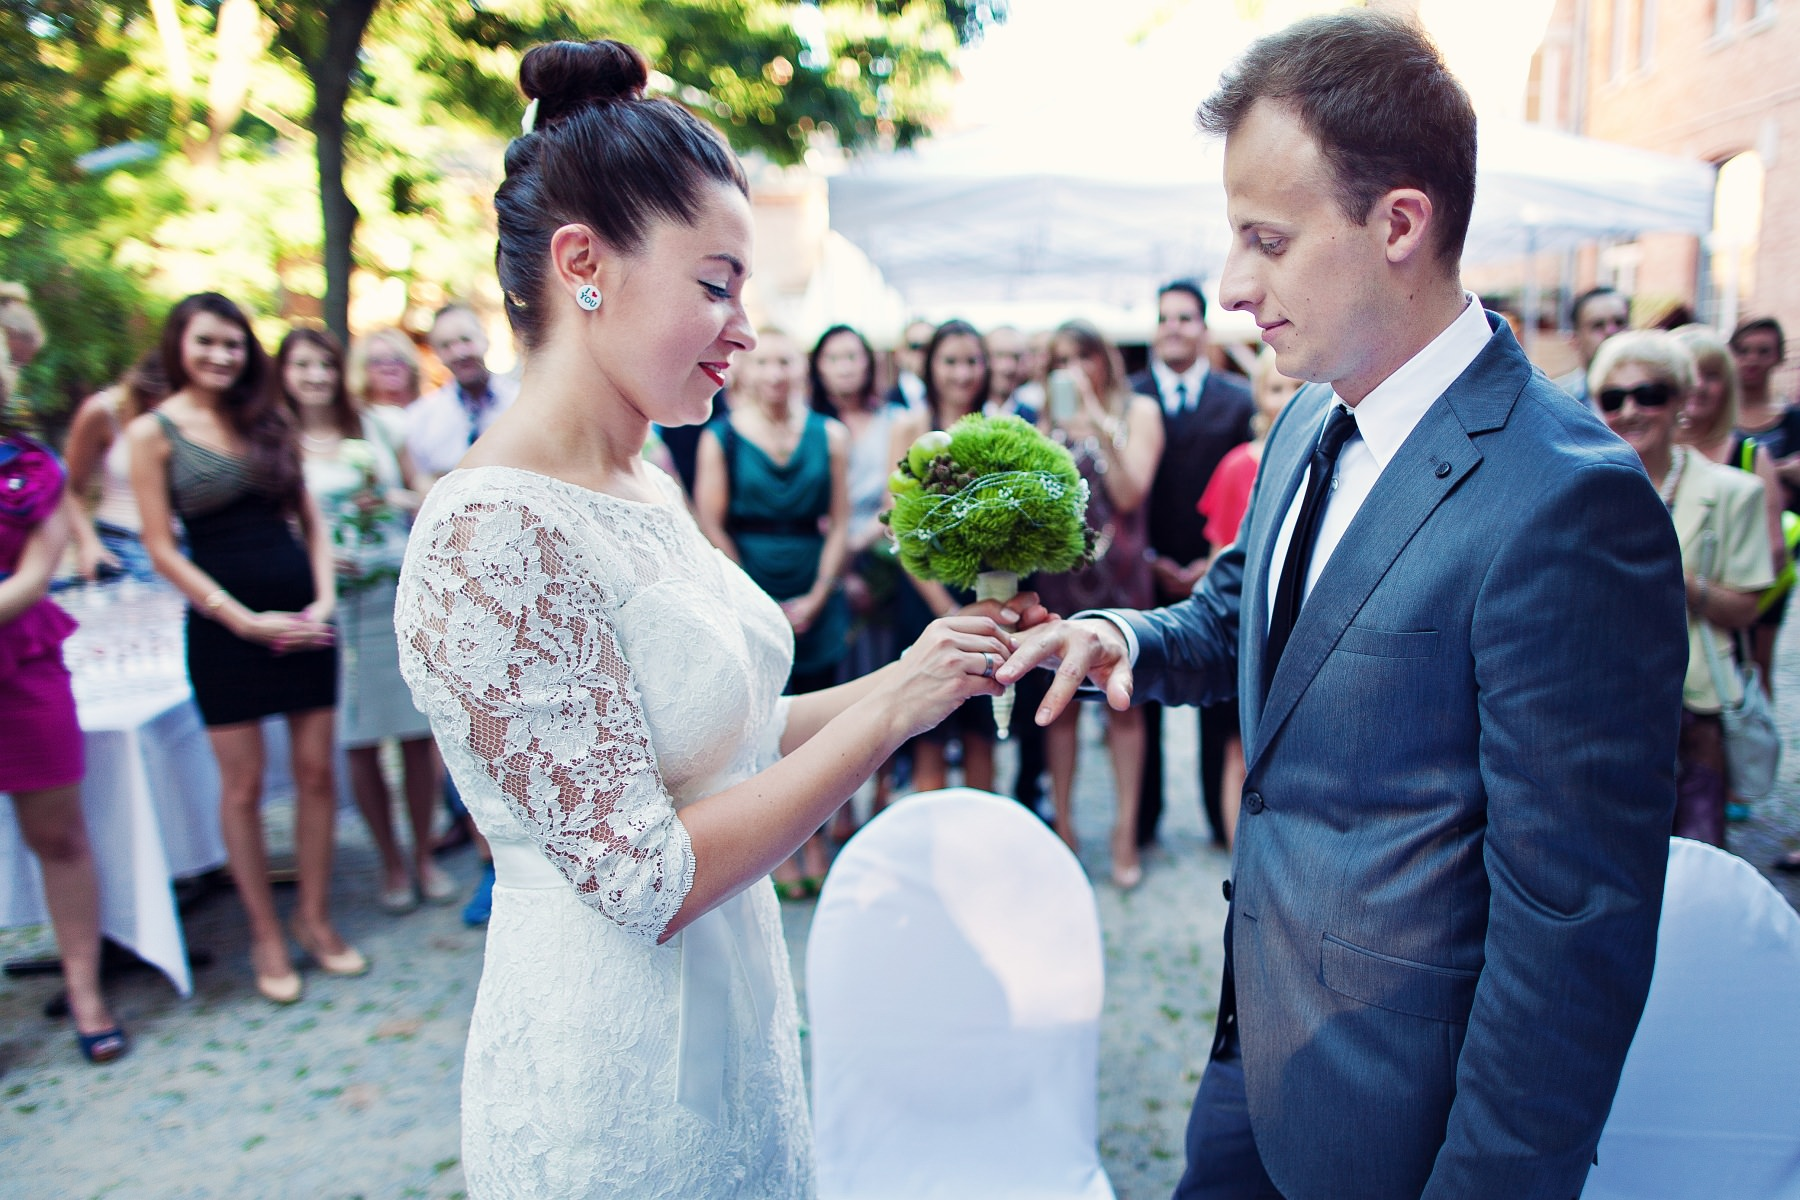 LOVE. Marta & Kamil, ceremonia.